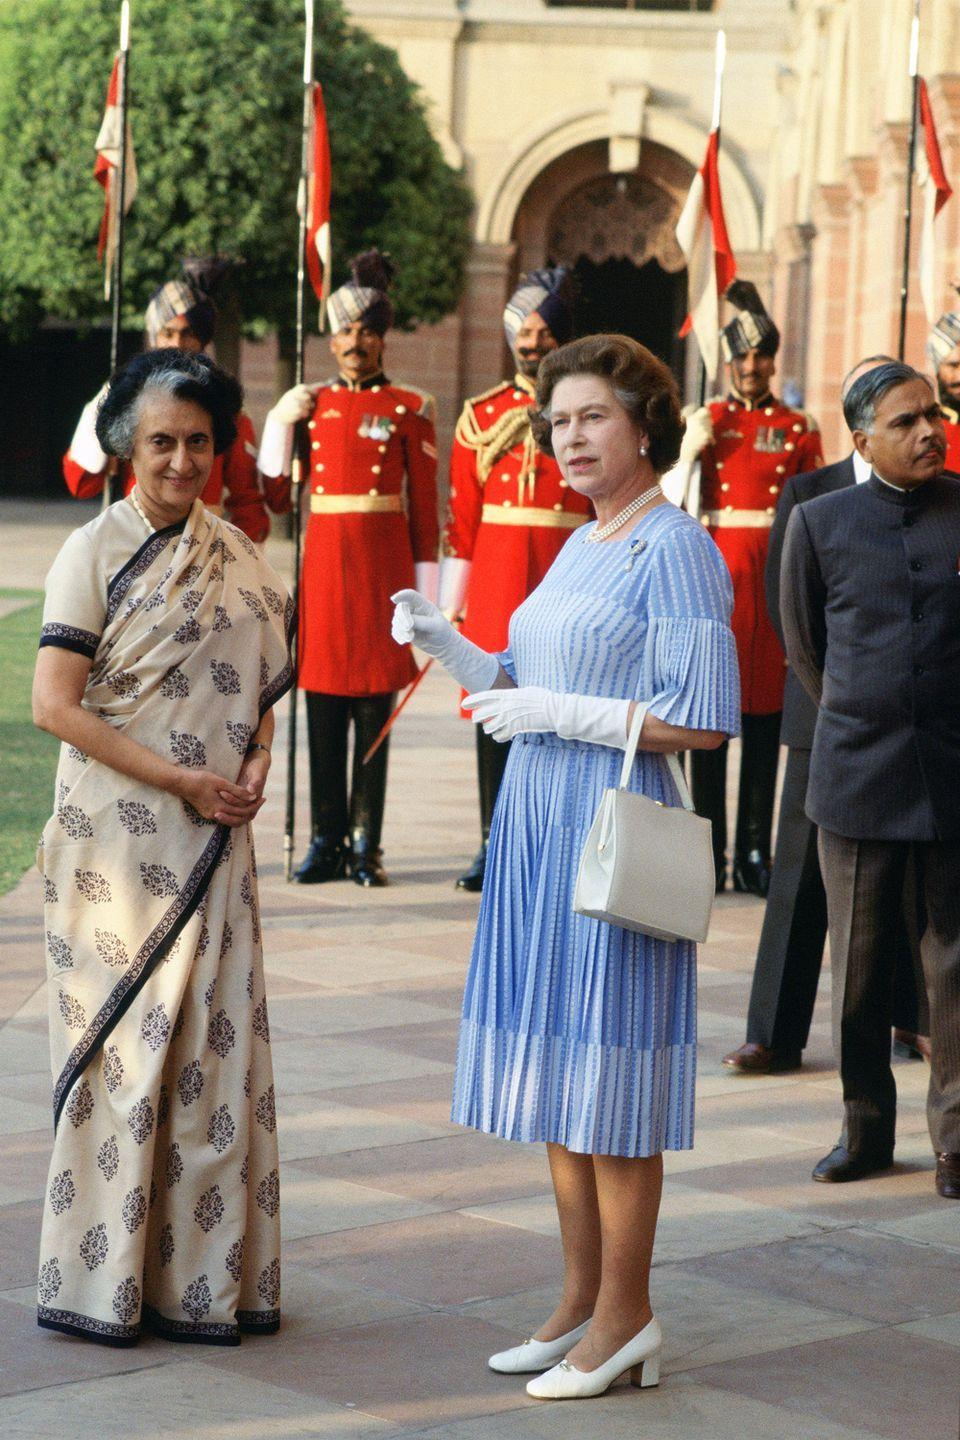 <p>Queen Elizabeth II looked pleased to meet Indira Gandhi, the first female Prime Minister of India during a visit to the country.</p>